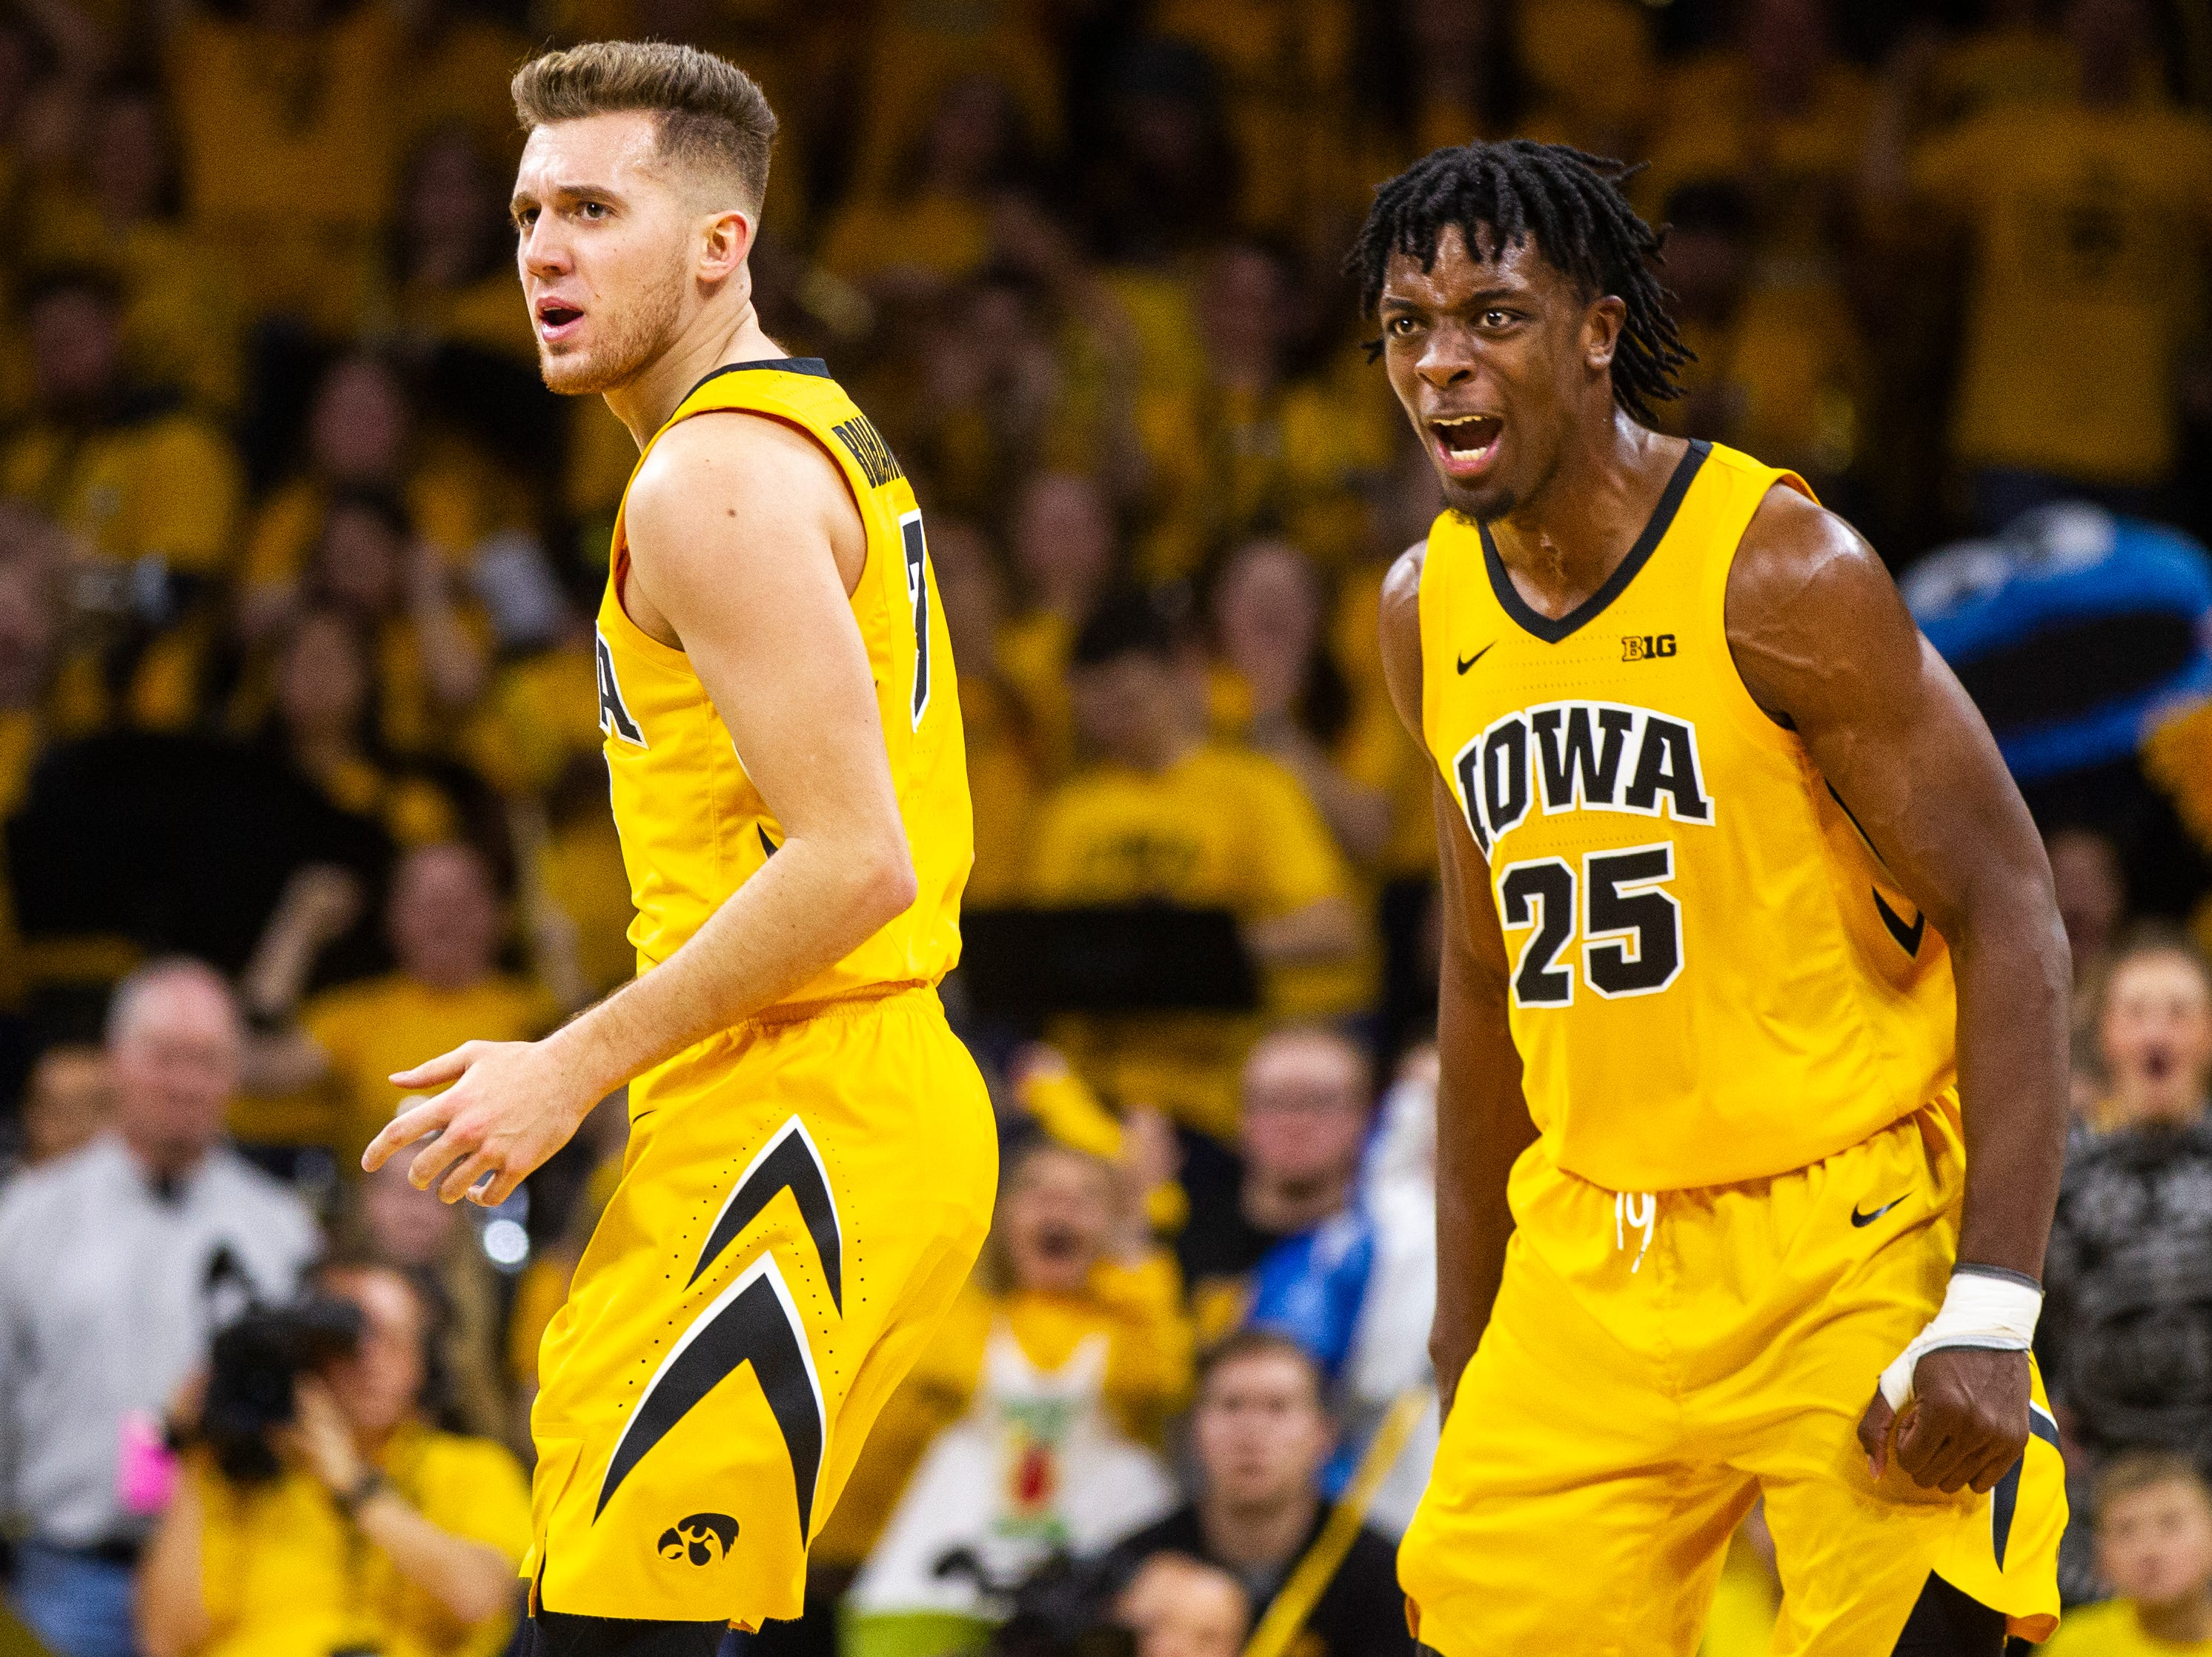 Iowa forward Tyler Cook (25) celebrates with Iowa guard Jordan Bohannon (3) during a NCAA Big Ten Conference men's basketball game on Friday, Nov. 30, 2018, at Carver-Hawkeye Arena in Iowa City.